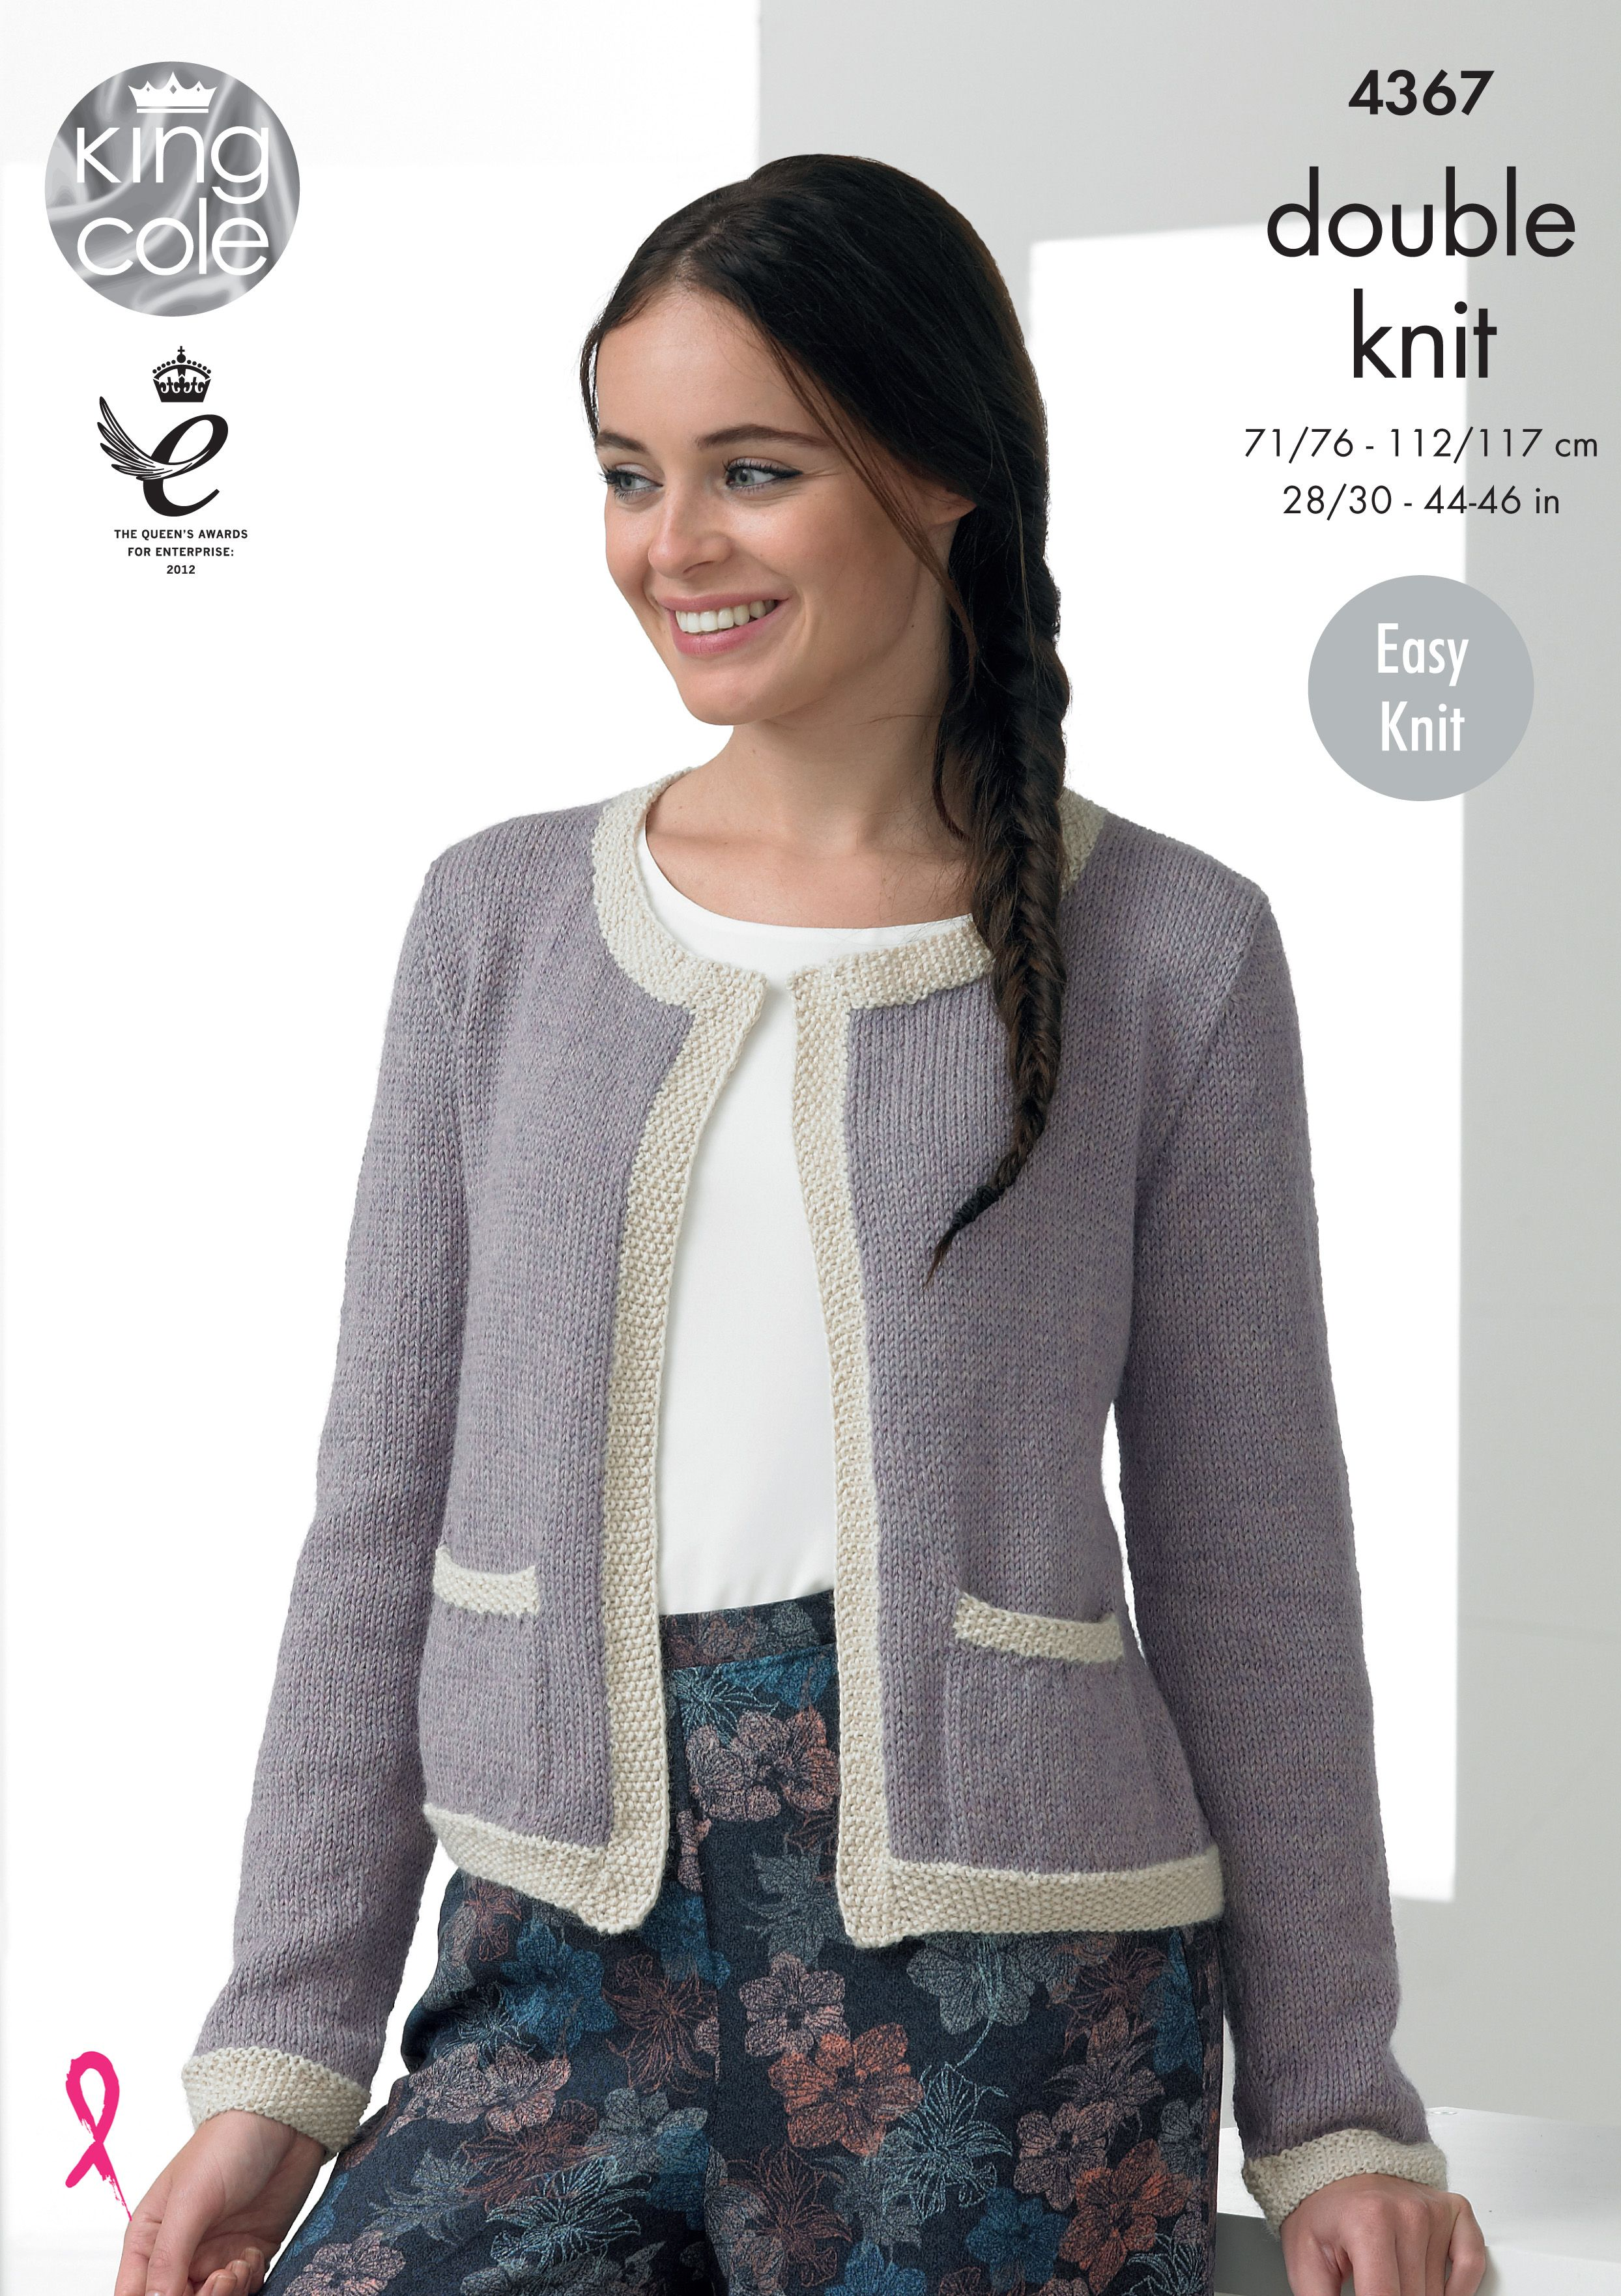 e307ab2f4 Jacket and Sweater Knitted with Baby Alpaca DK - King Cole ...